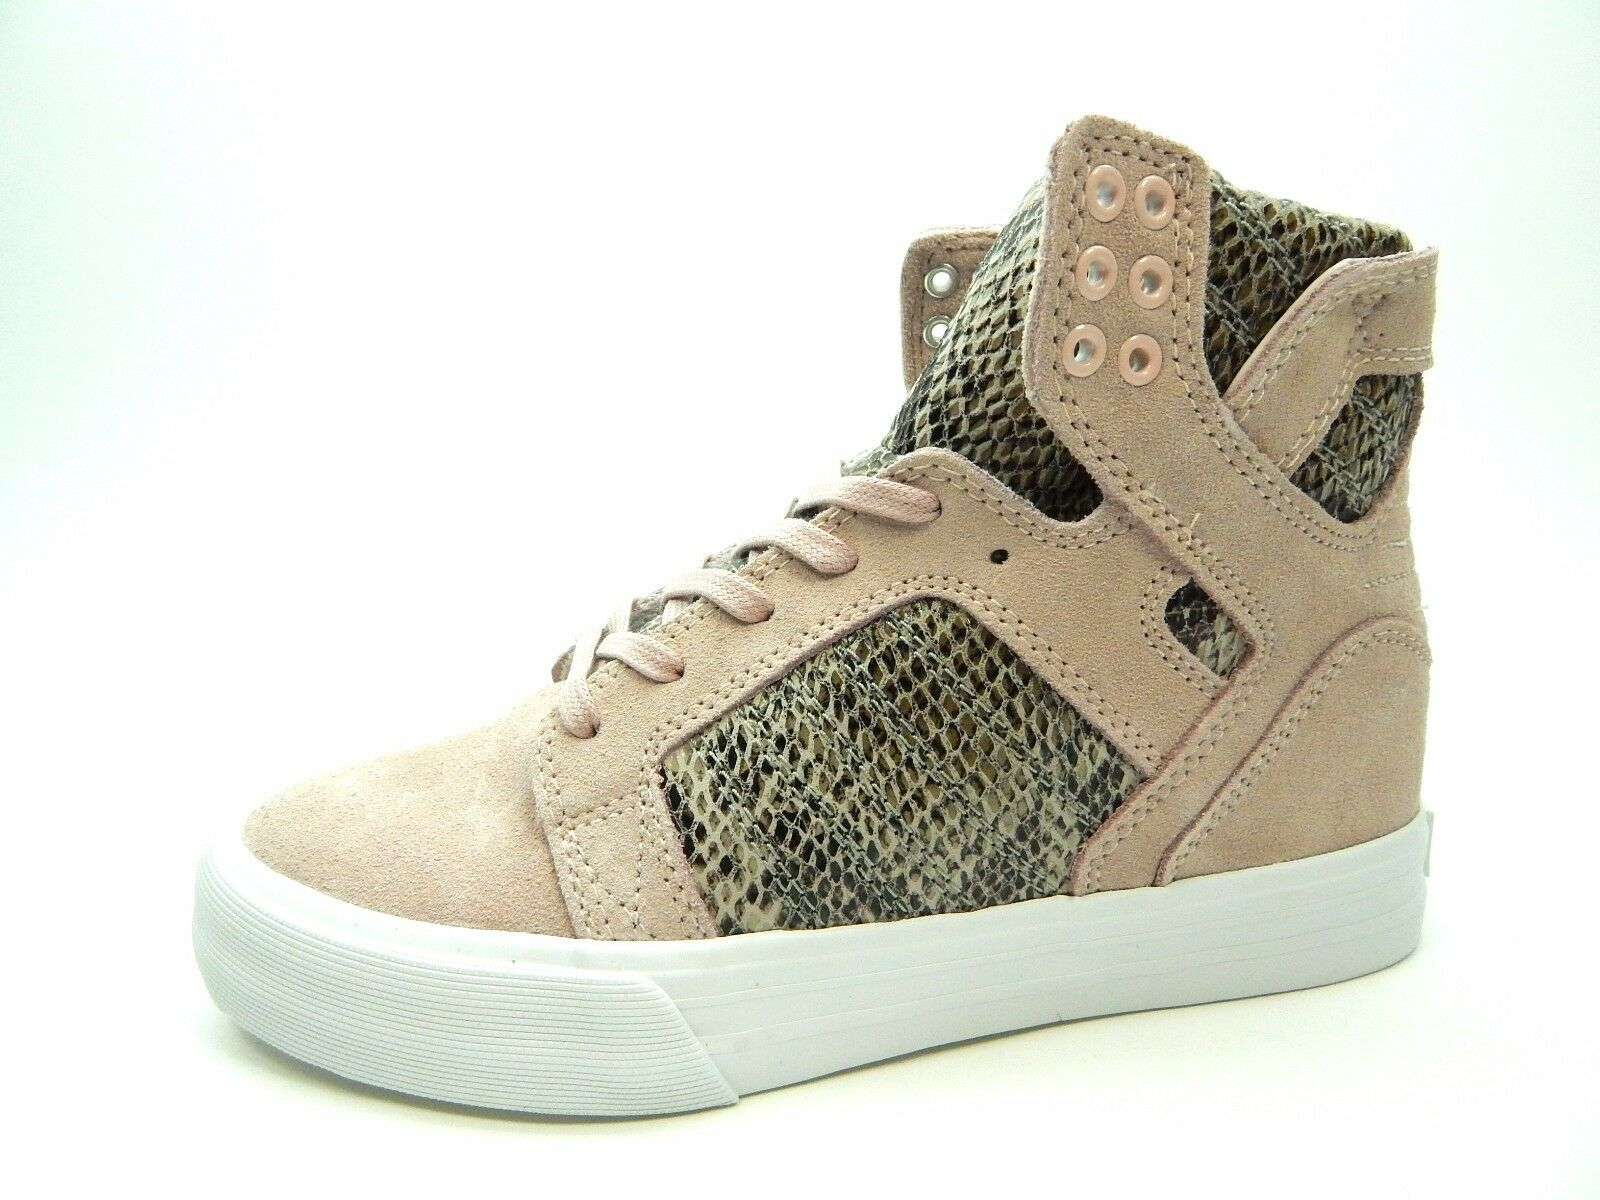 SUPRA SKYTOP WEDGE PINK BROWN WHITE SW08001 WOMEN SHOES SIZE 7 TO 9.5